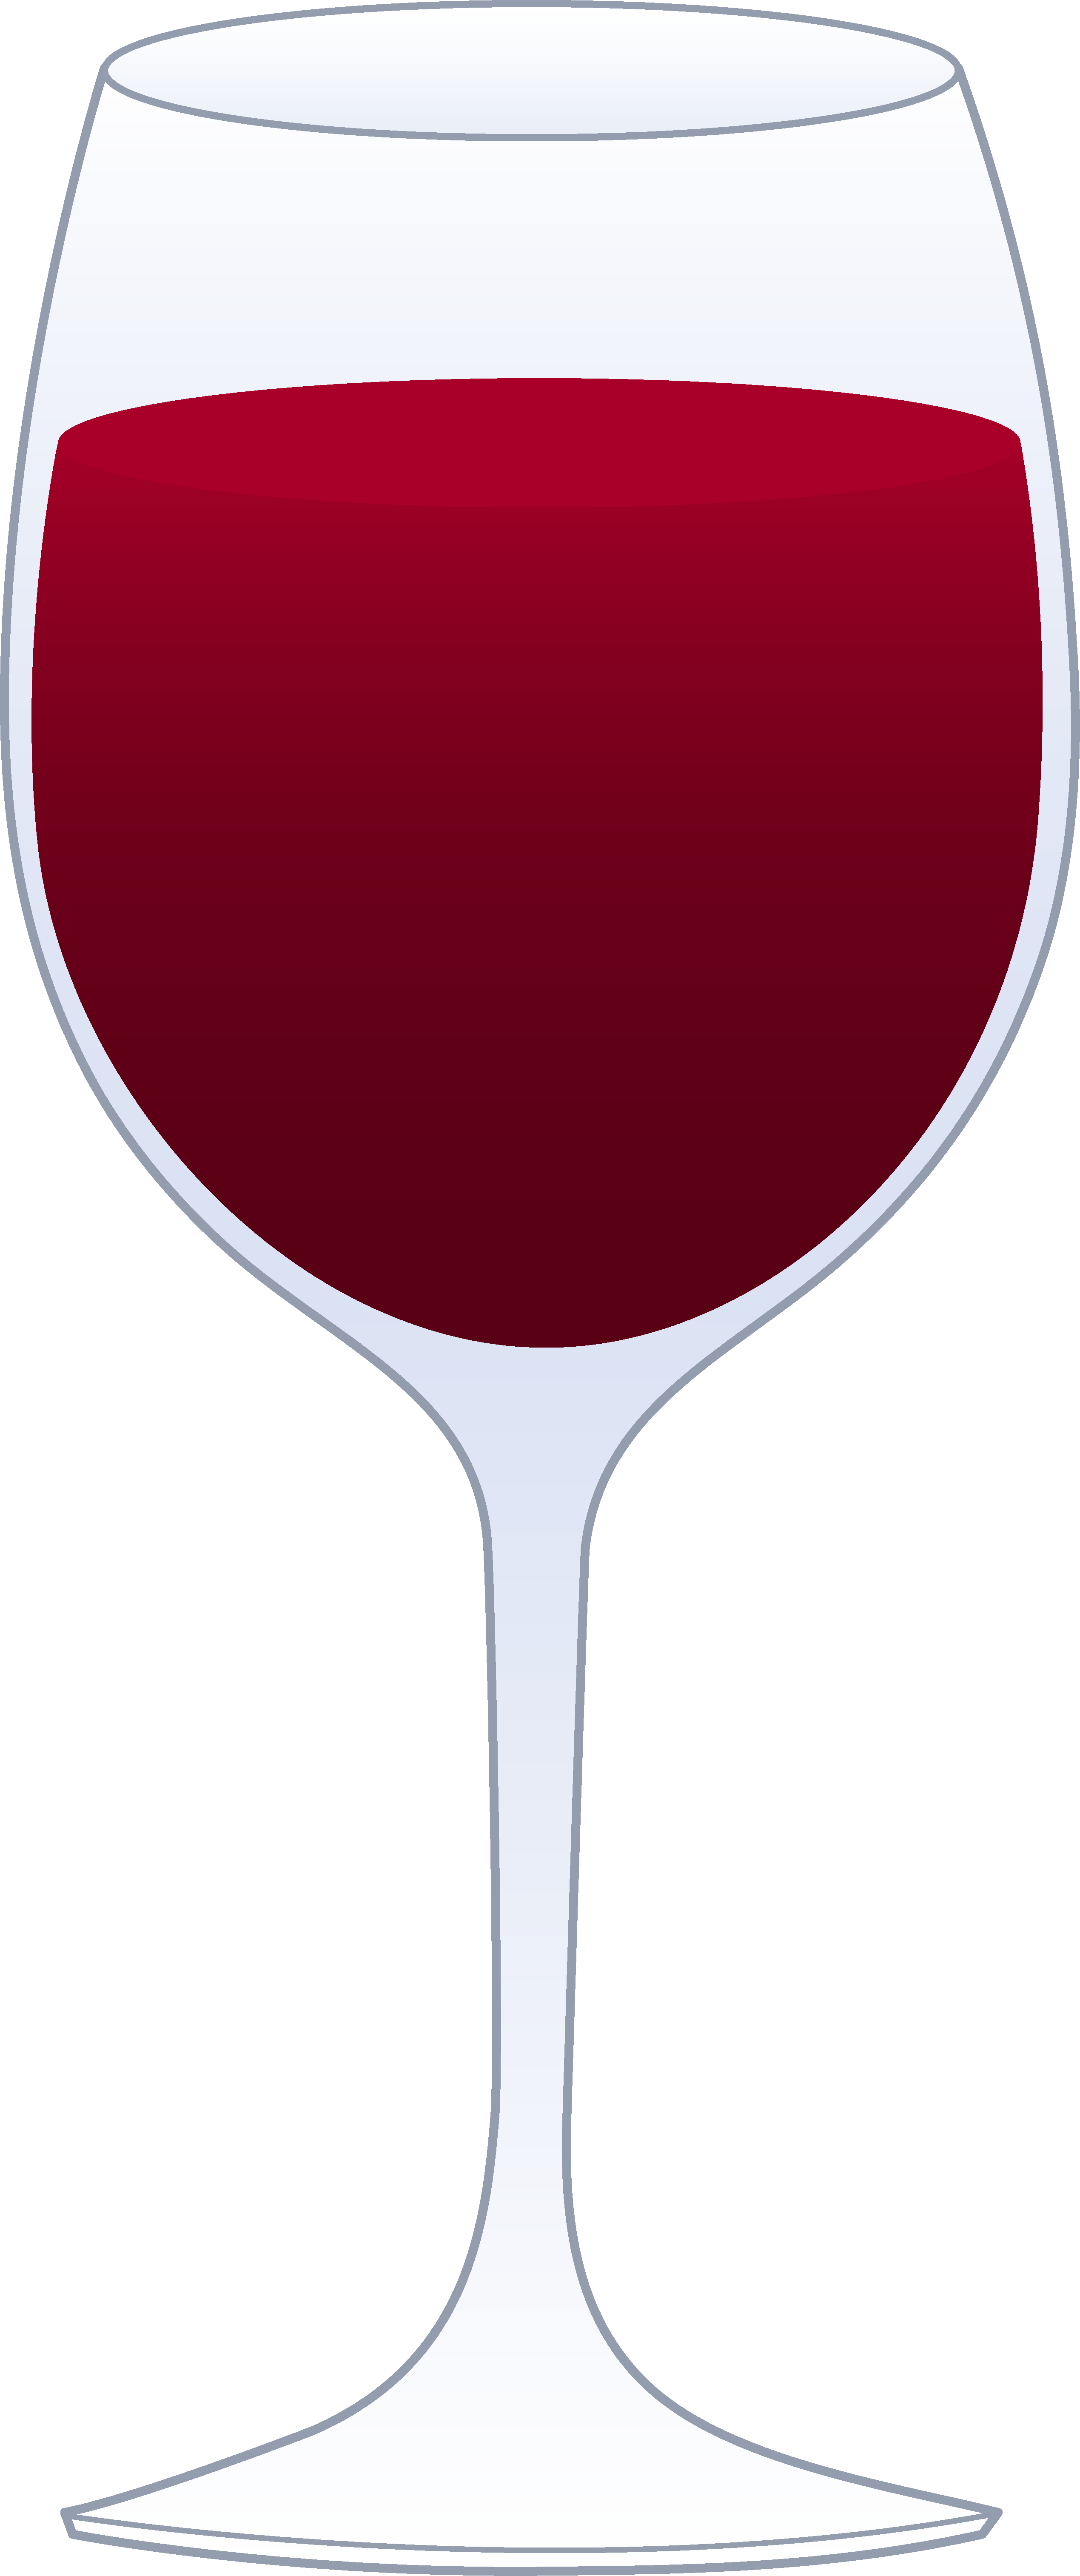 Free Wineglass Cliparts, Download Free Clip Art, Free Clip.